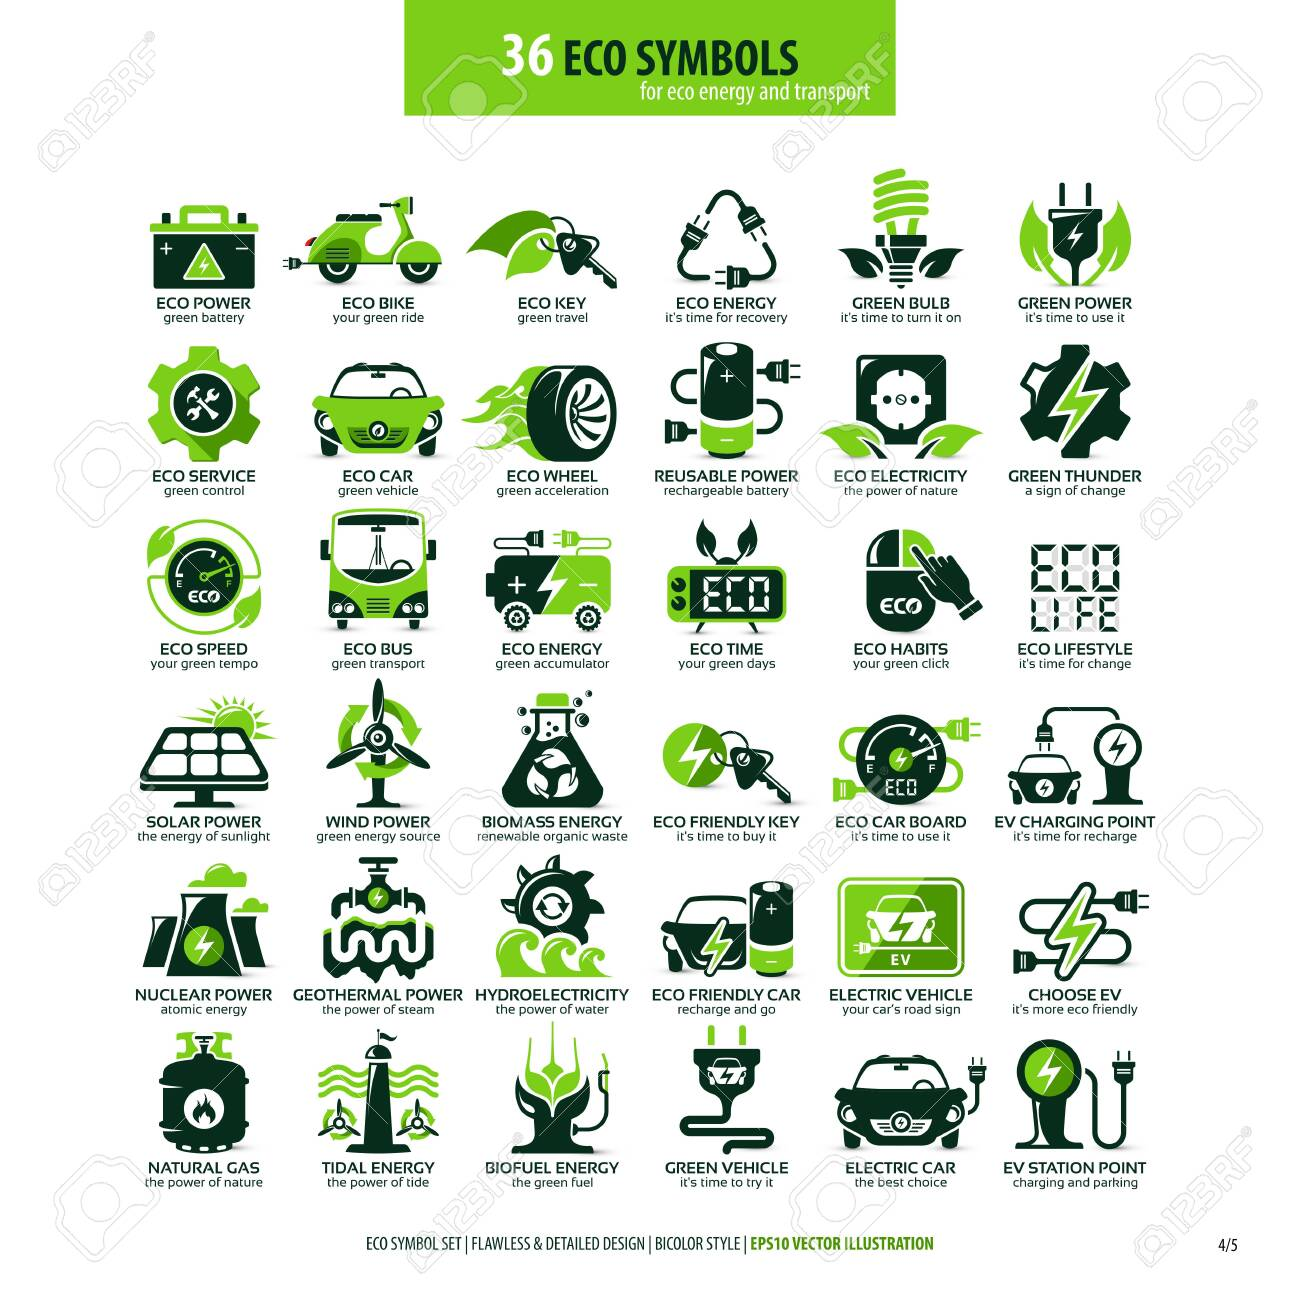 collections of eco friendly flat symbols, high detailed icons, graphic design web elements, alternative ecological concept, isolated emblems on clean white background - 126885301